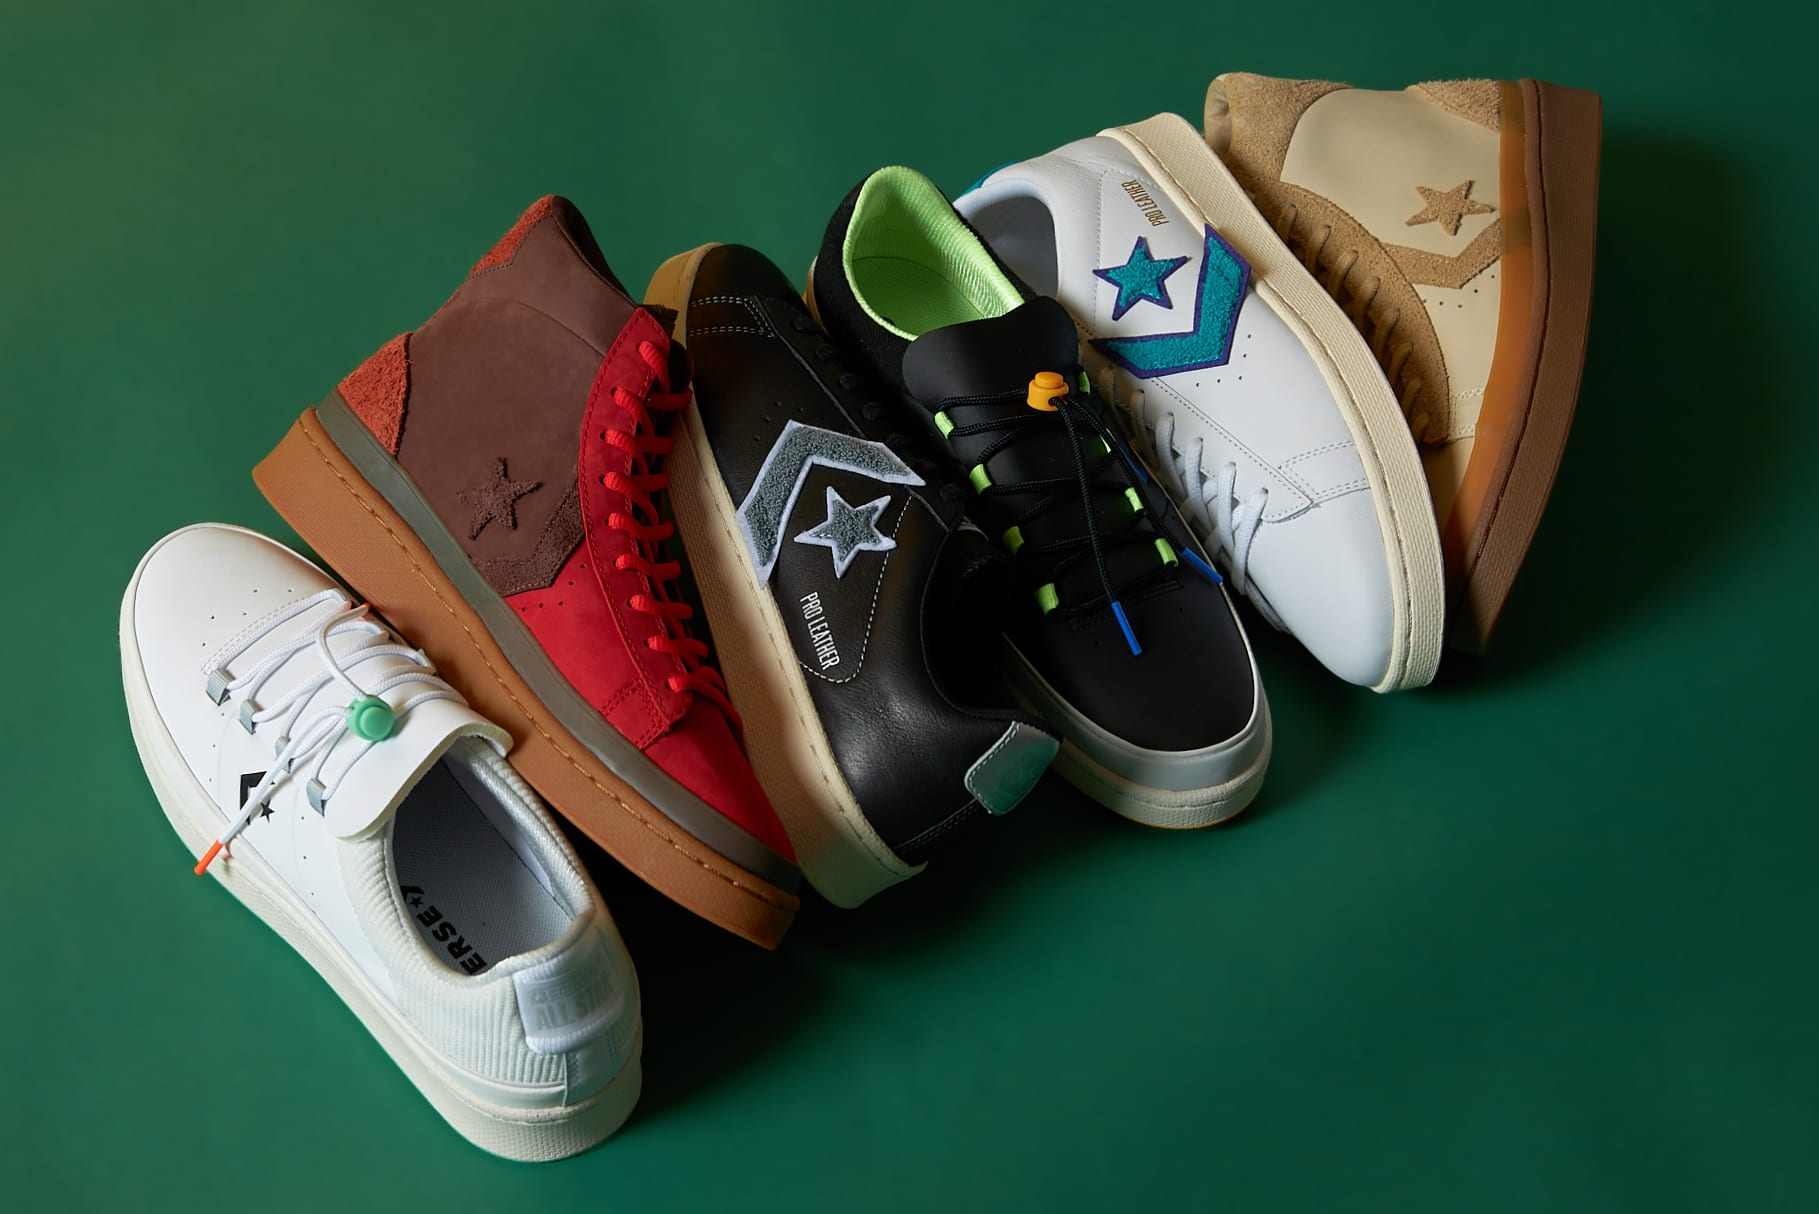 The Converse Pro Leather Decades Pack